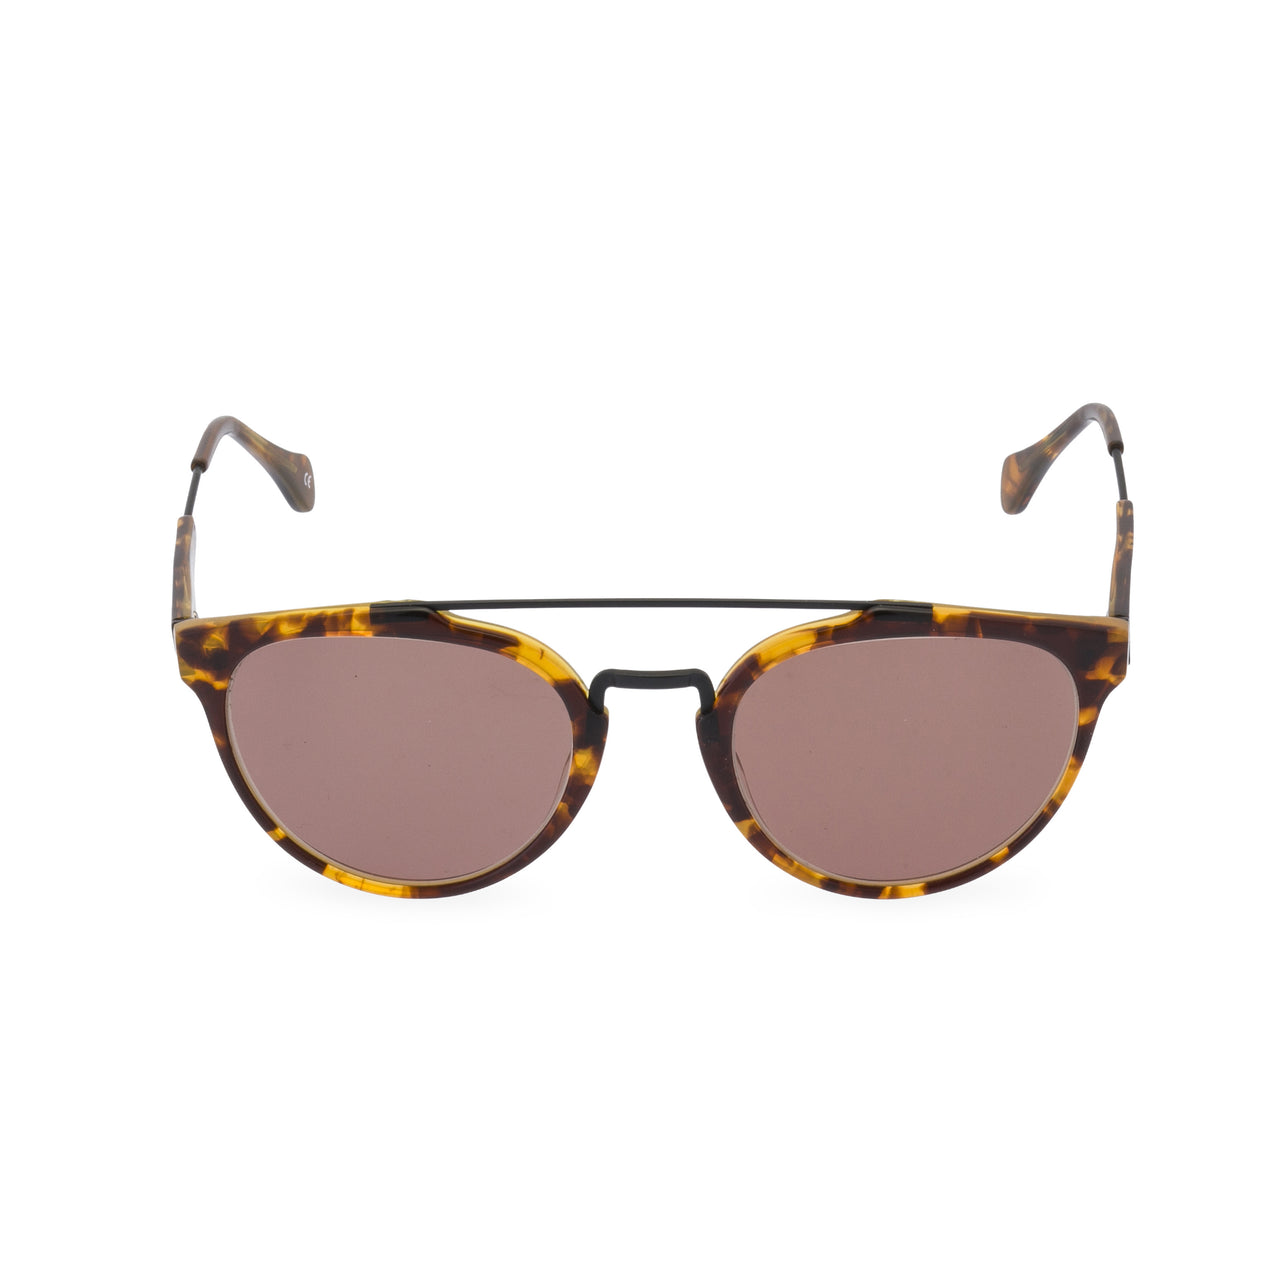 Raffles - Sunglasses Tortoiseshell / Brown Lens